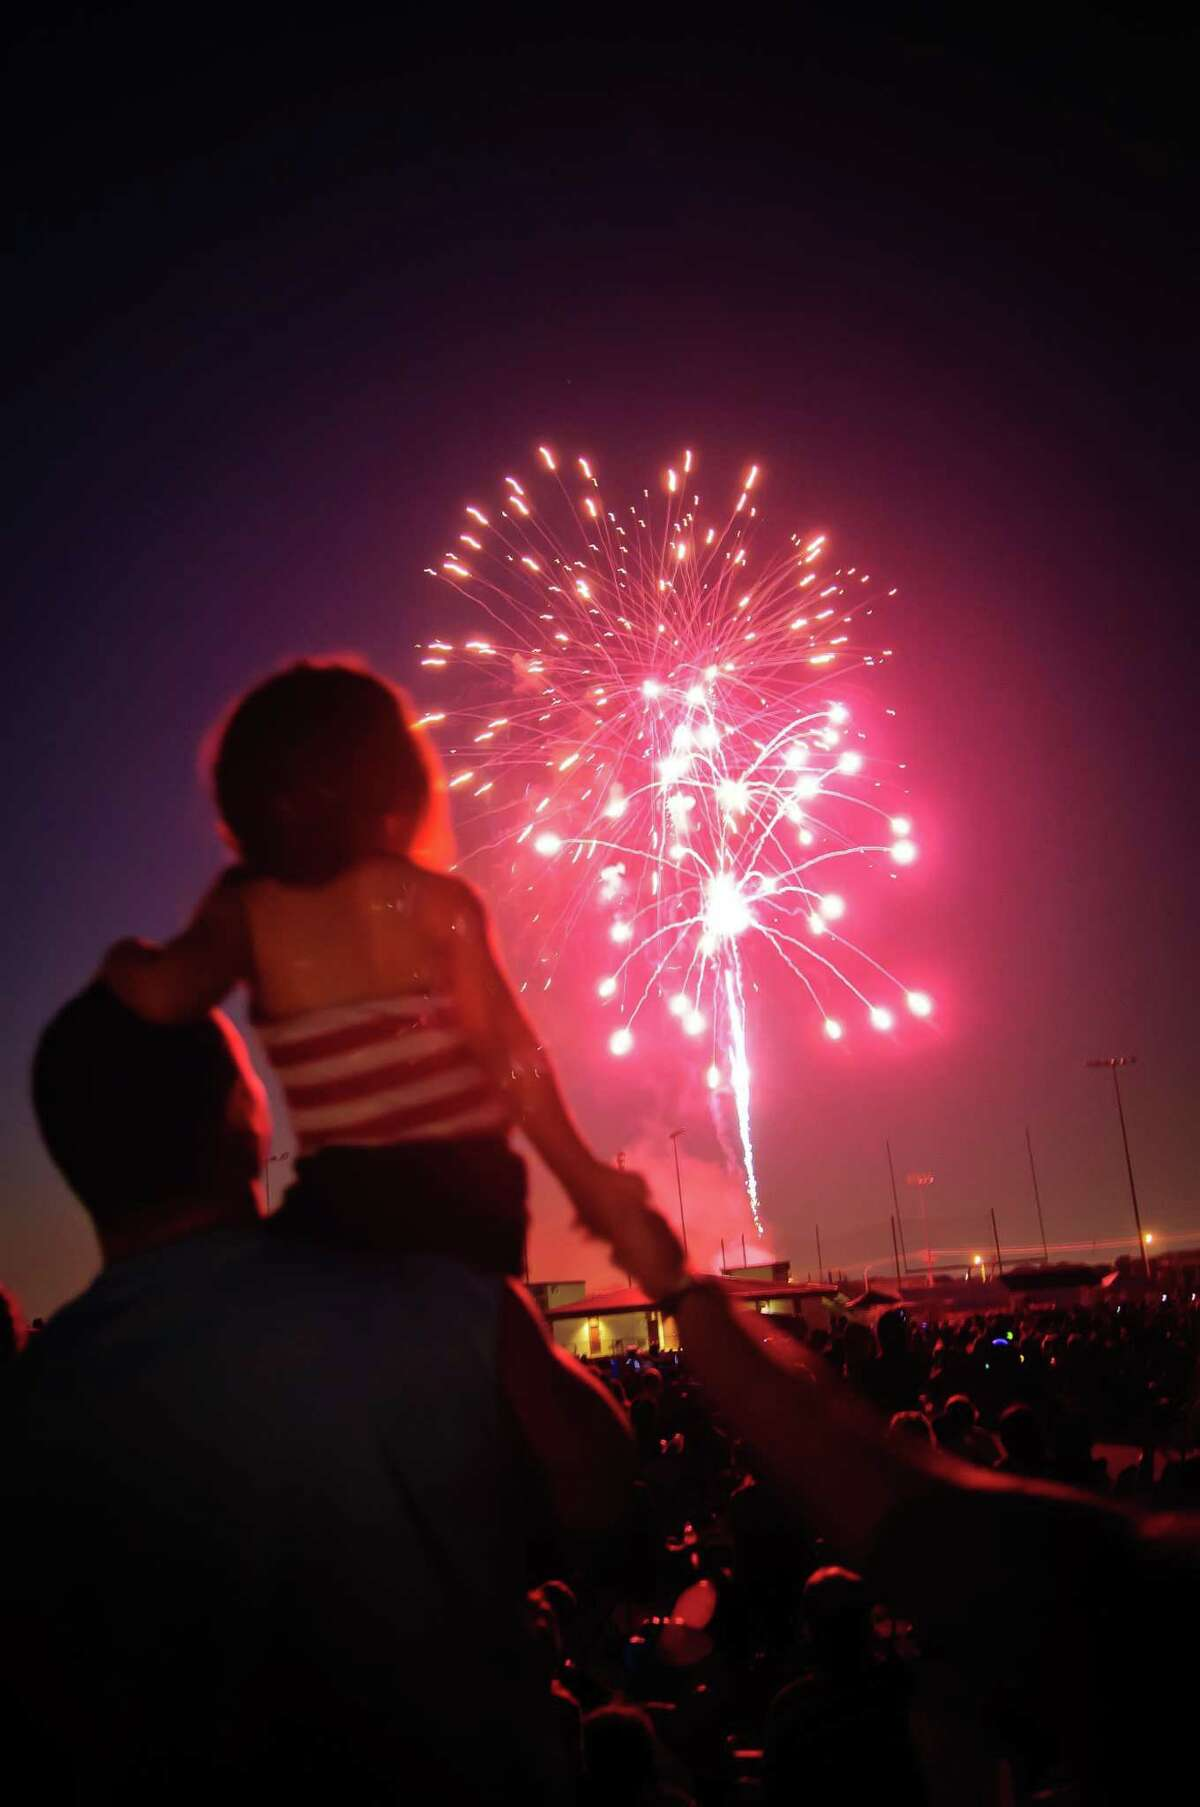 In addition to the annual tradition of a fireworks display, the city of Pearland's Fourth of July celebration this year will be at Independence Park, where the event will showcase new features such as an amphitheater, stage, new playground and a mural. The musical headline act is former